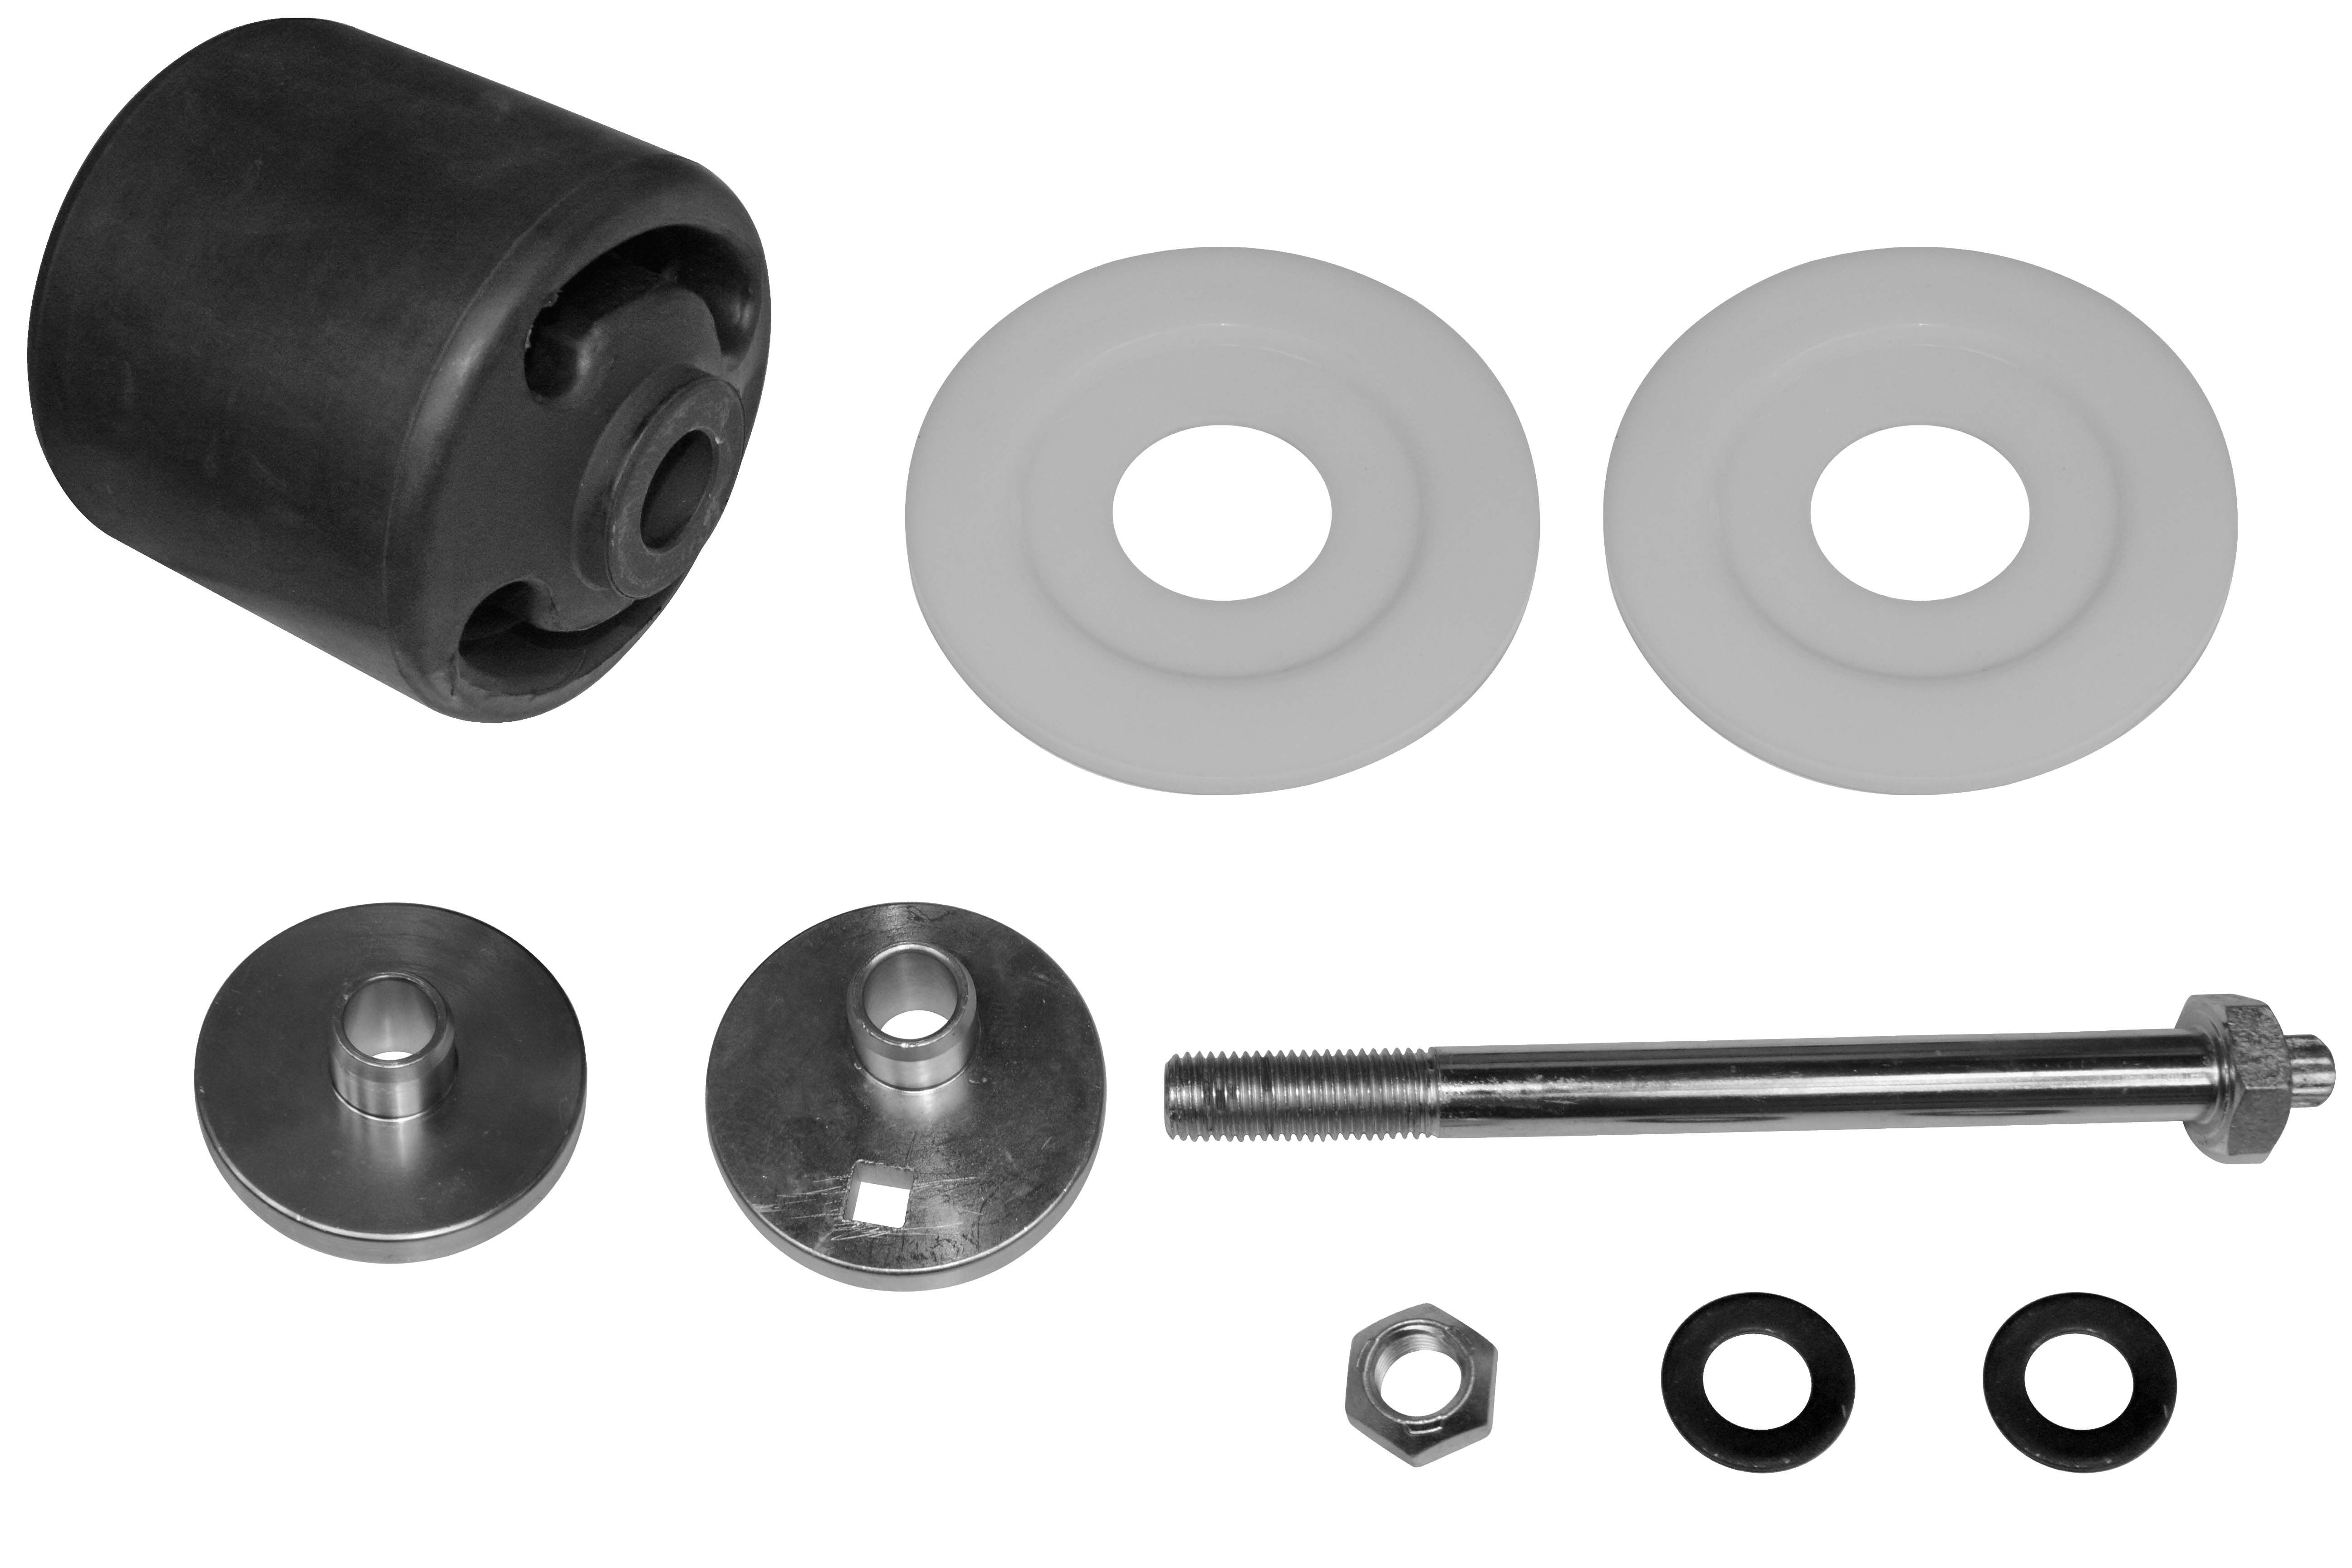 CV Axle Beam End Bush Kit, use with TTC50873 for easier